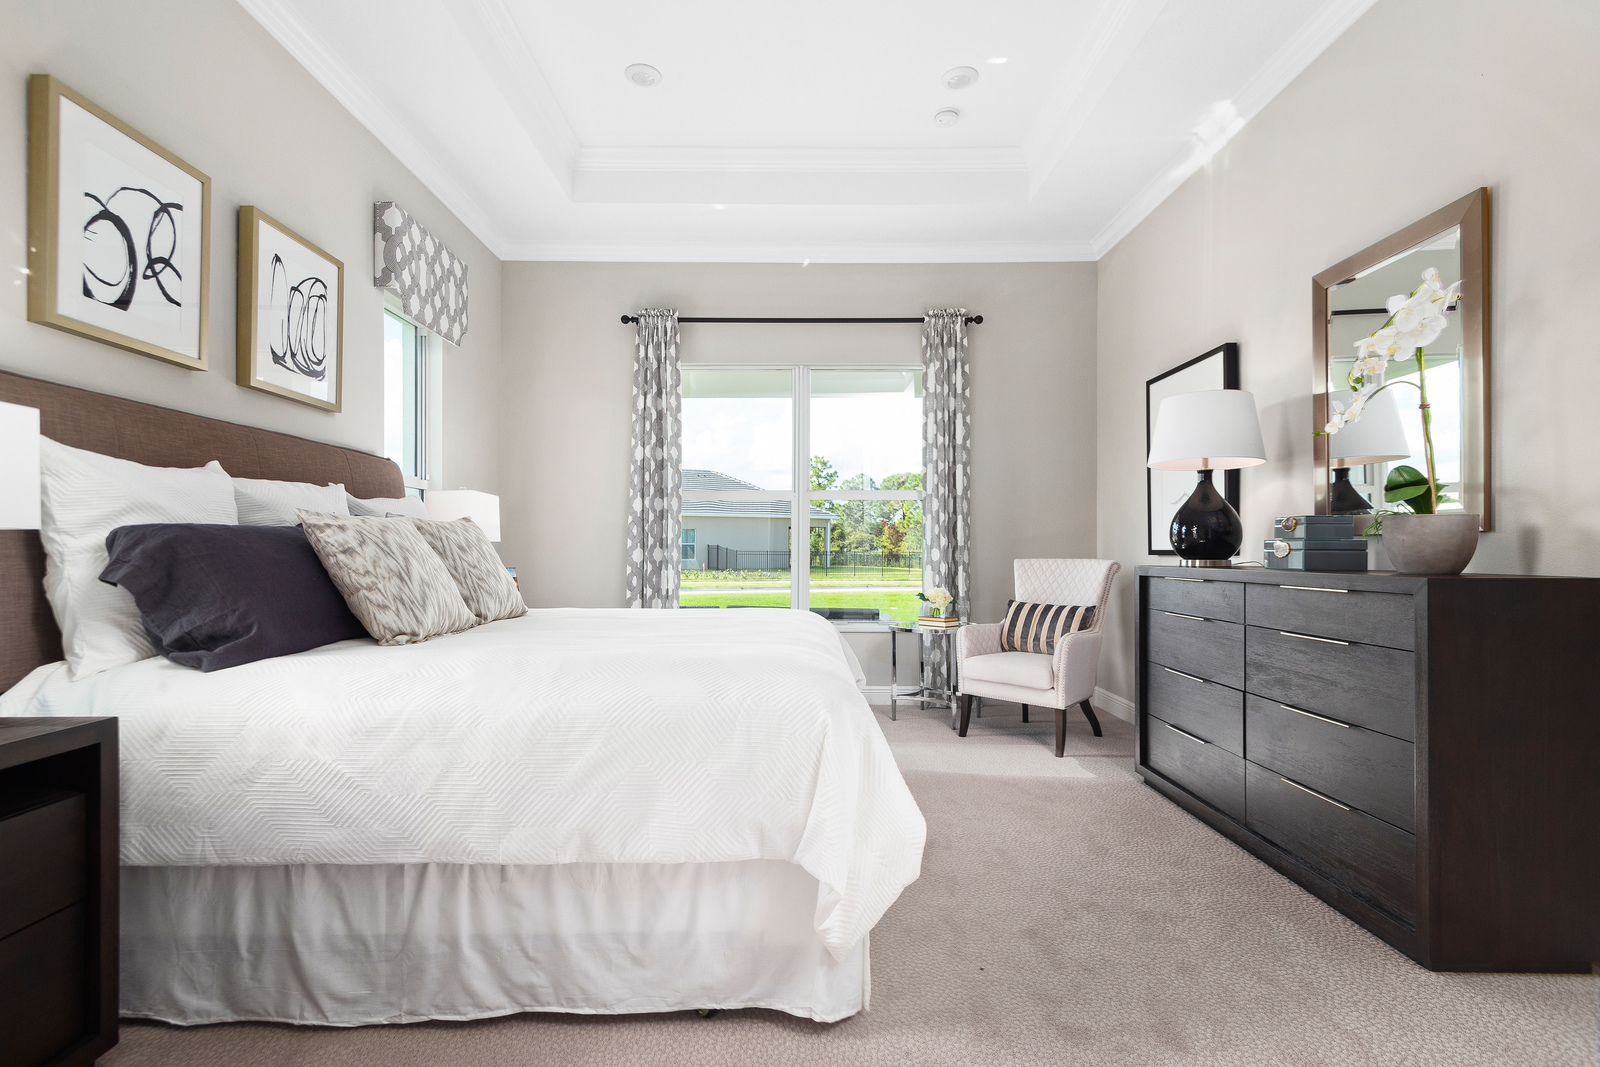 Bedroom featured in the Hernando- The Anchor Collection By Ryan Homes